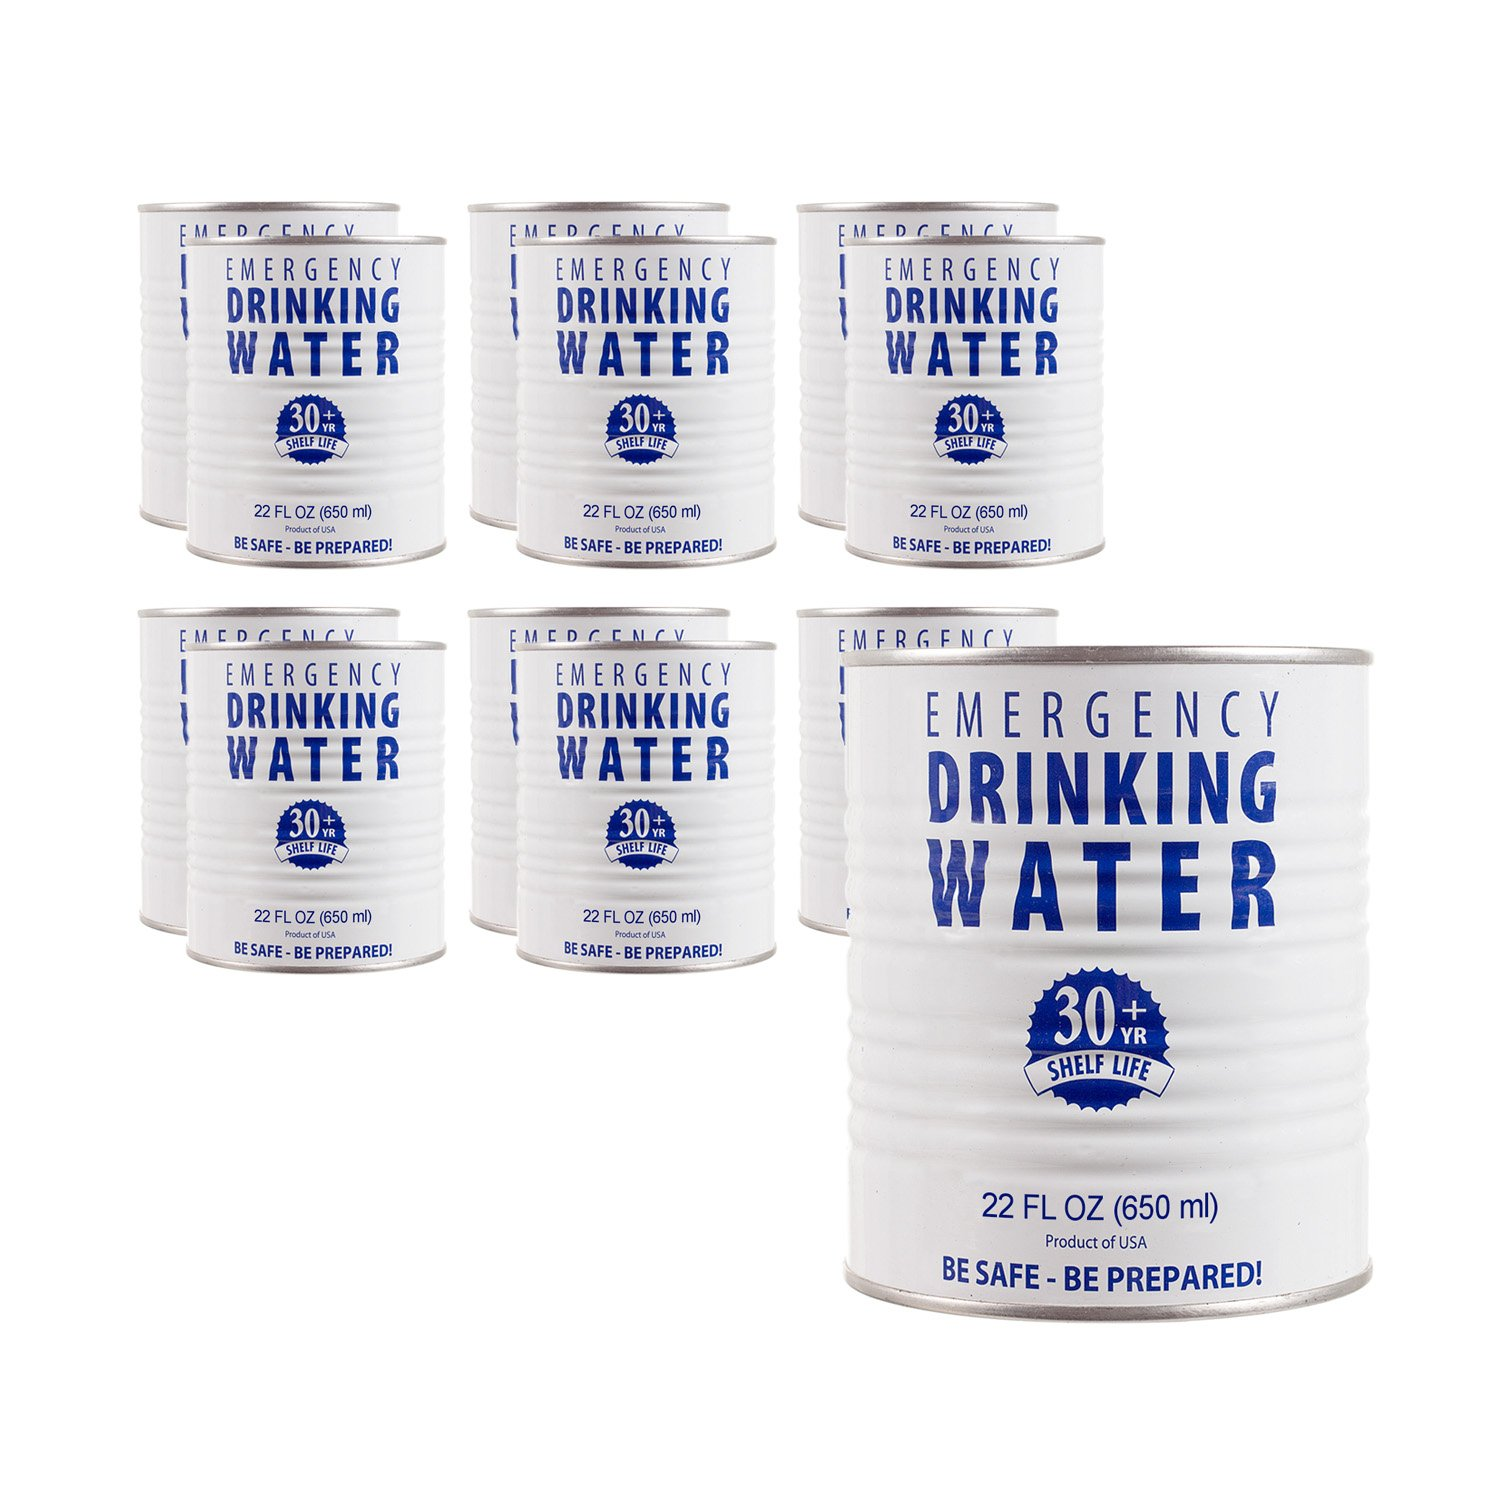 Purifying Drinking Water Amazoncom Case Of Canned Drinking Water 12 Cans Sports Outdoors